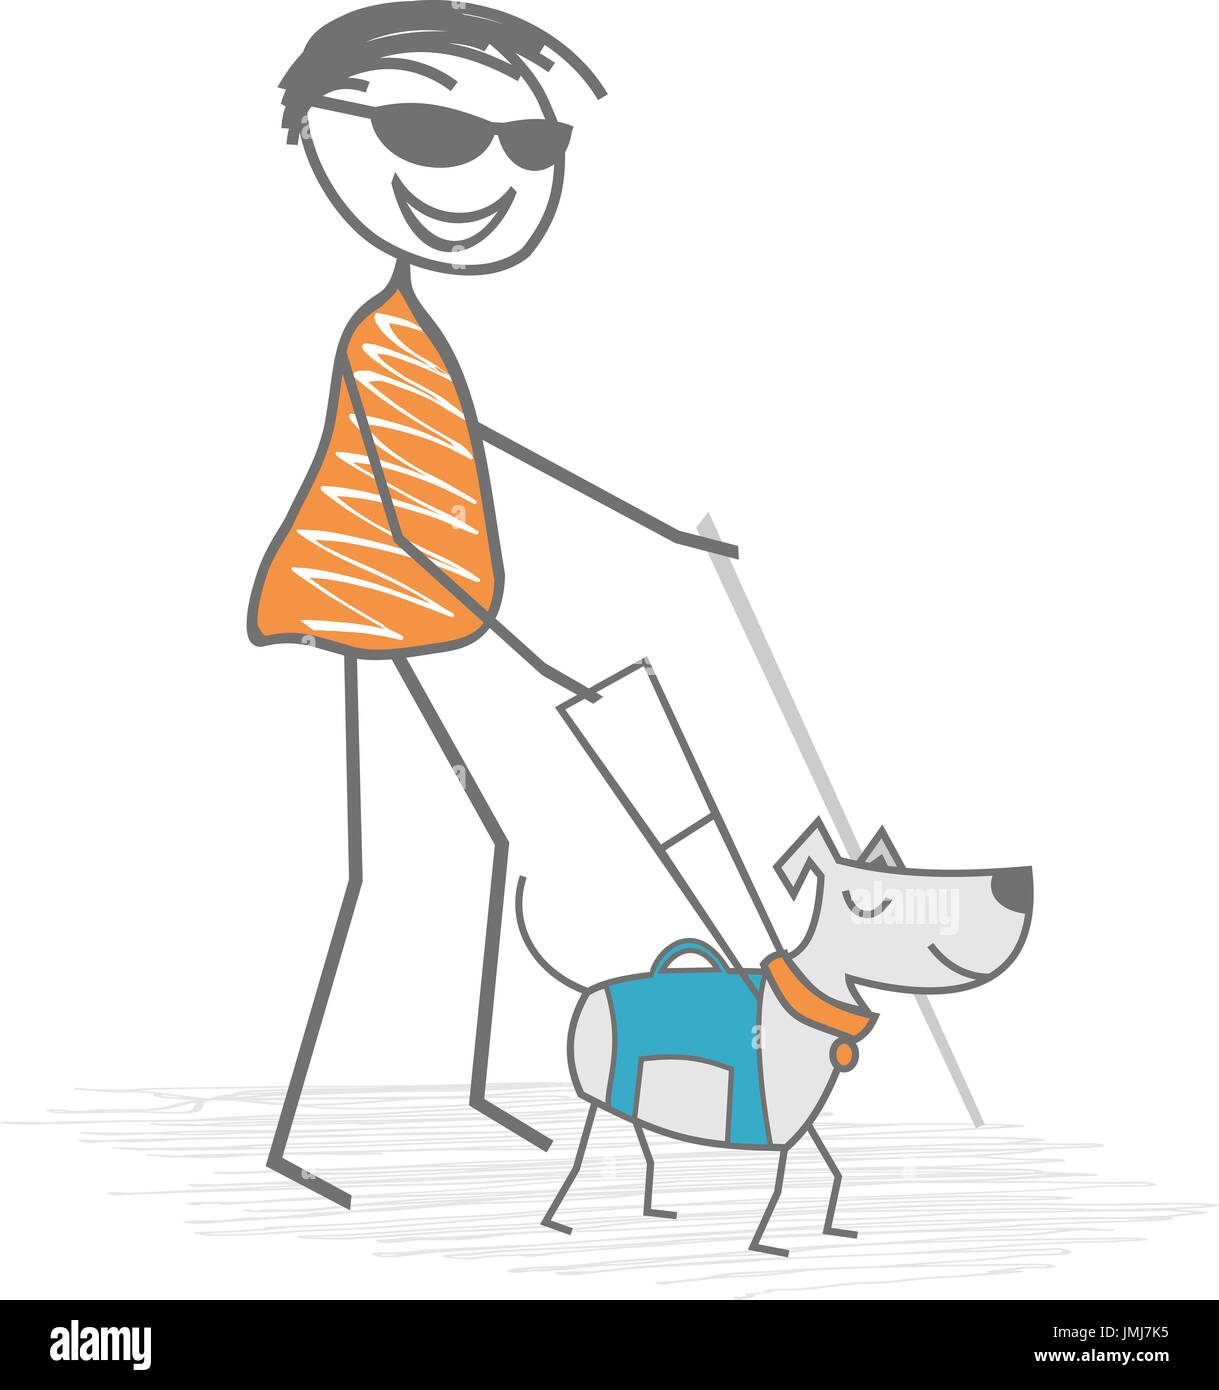 A handicapped man, blind, walks with a white cane and a dog to get help in everyday life - Stock Image